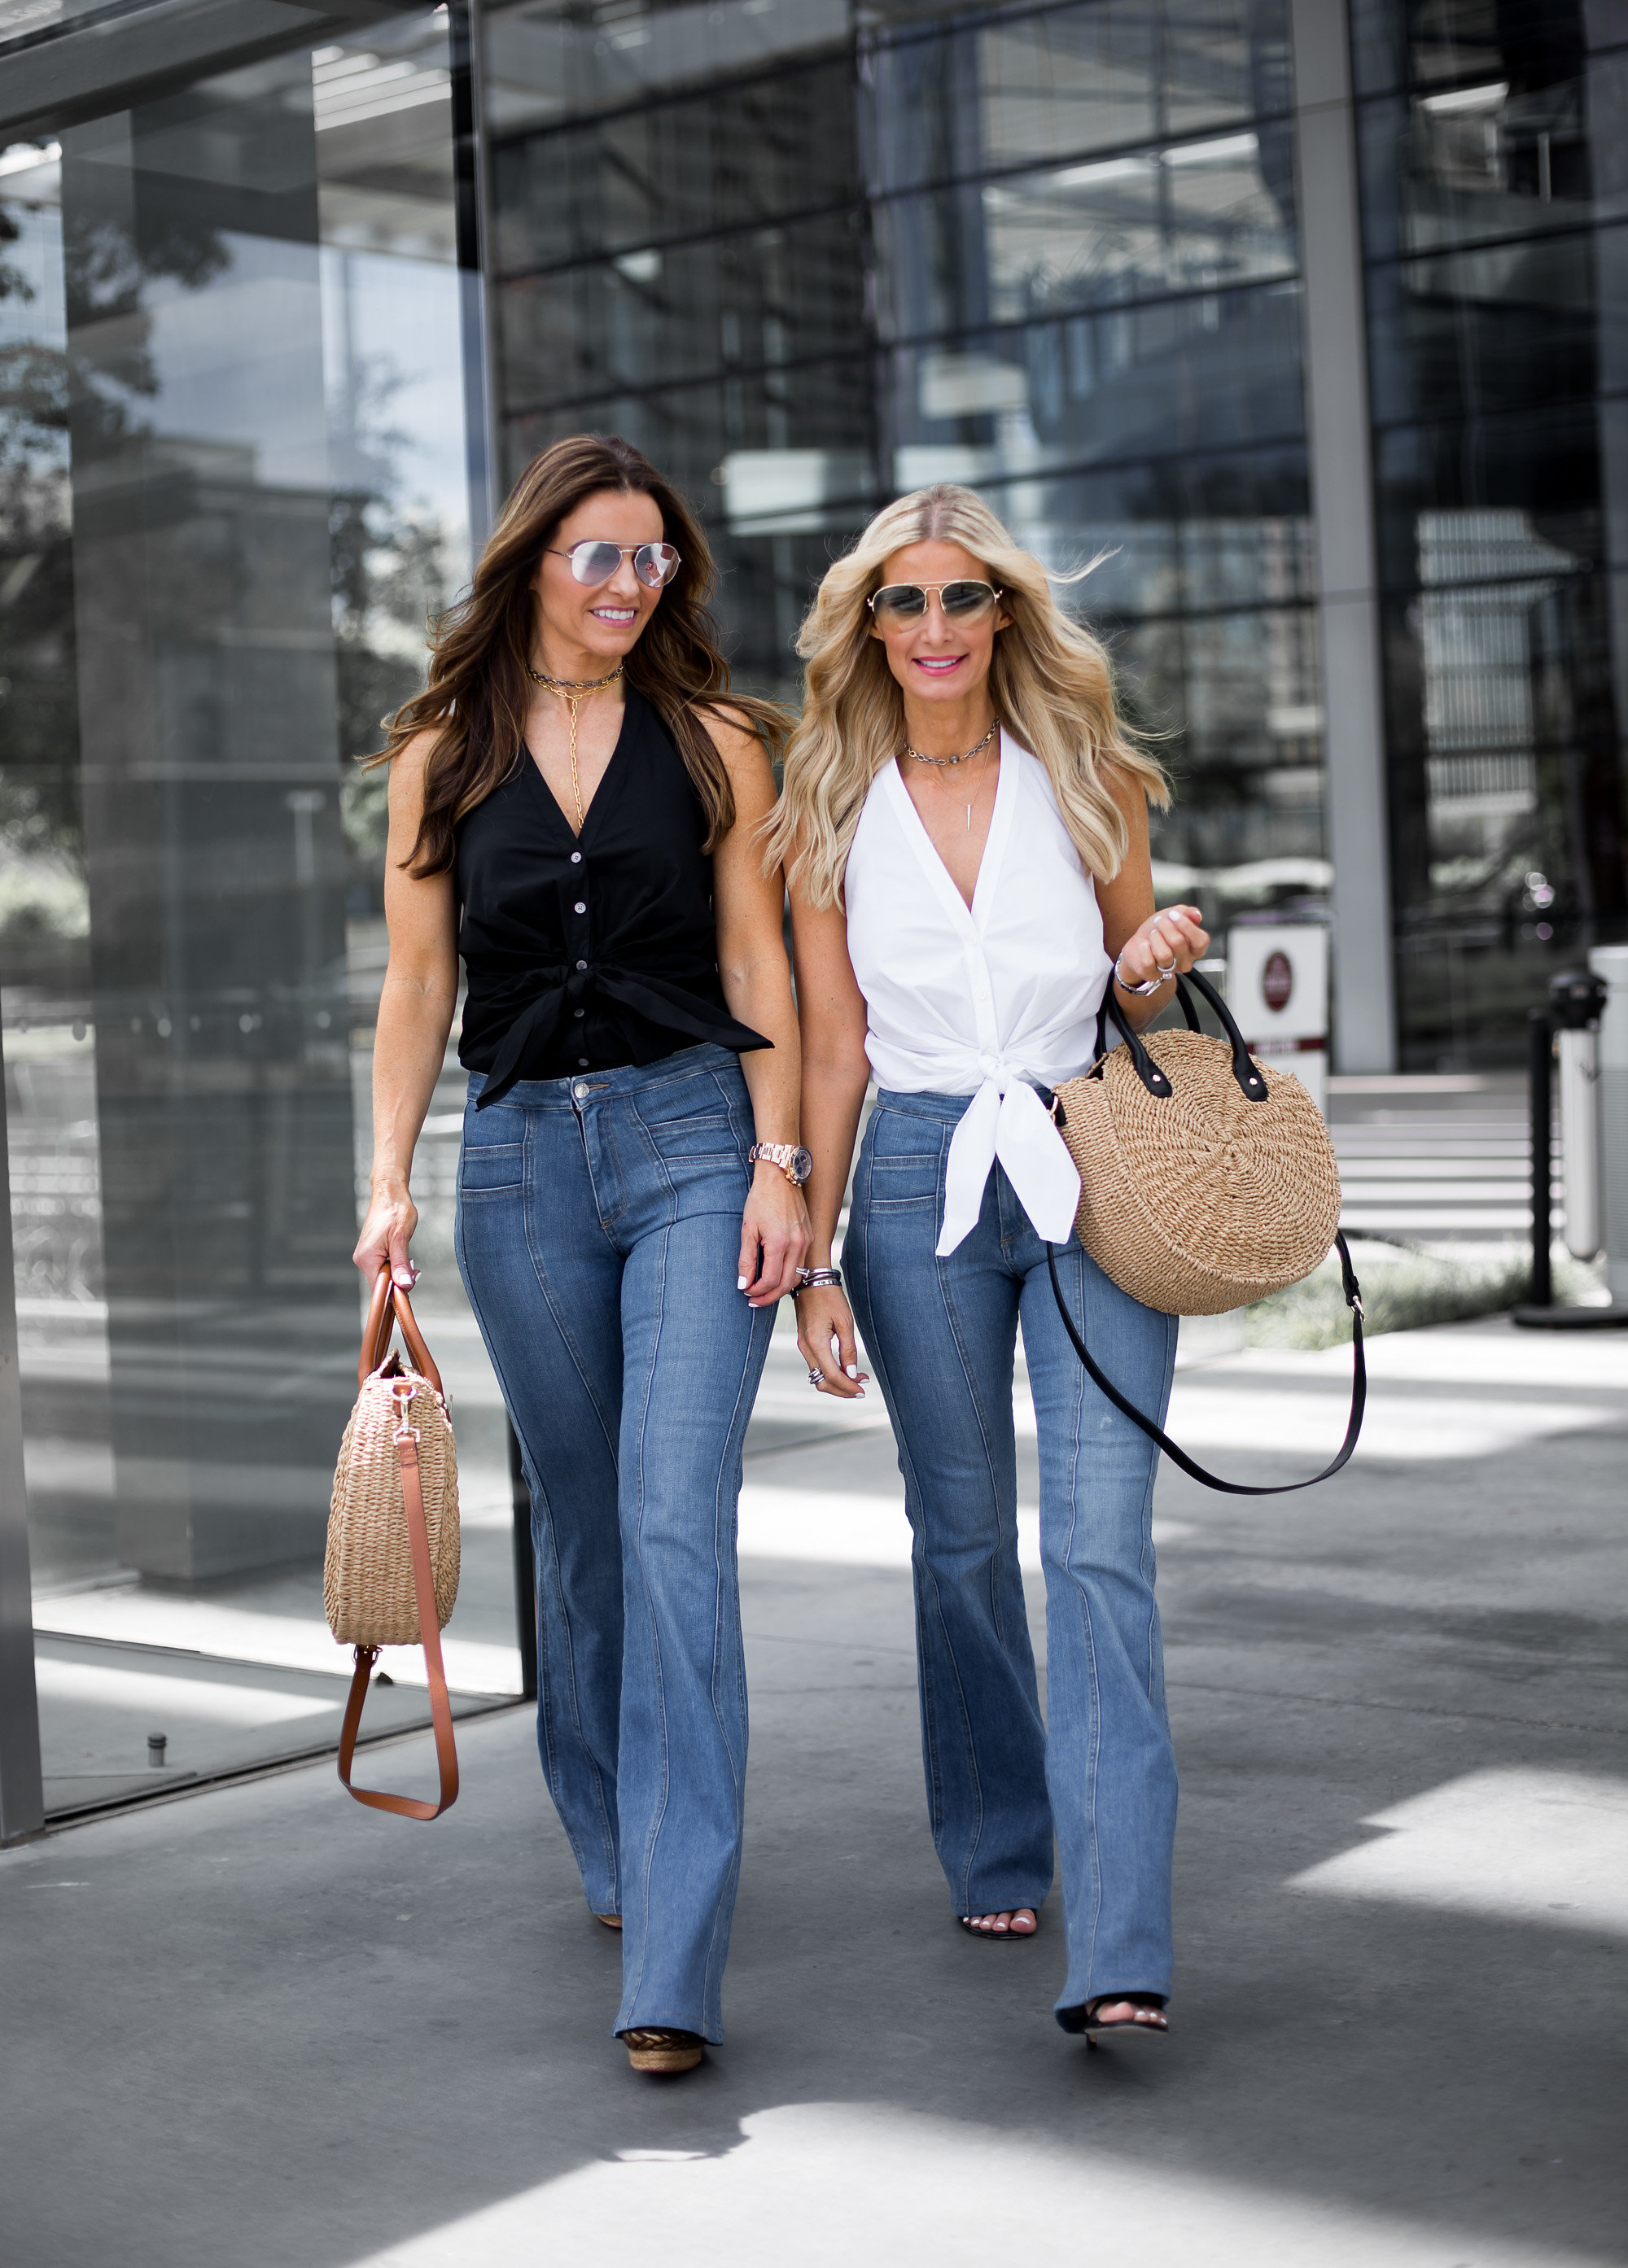 aaee1b151c2b67 The Most Flattering Flare jeans by Veronica Beard + A White Top